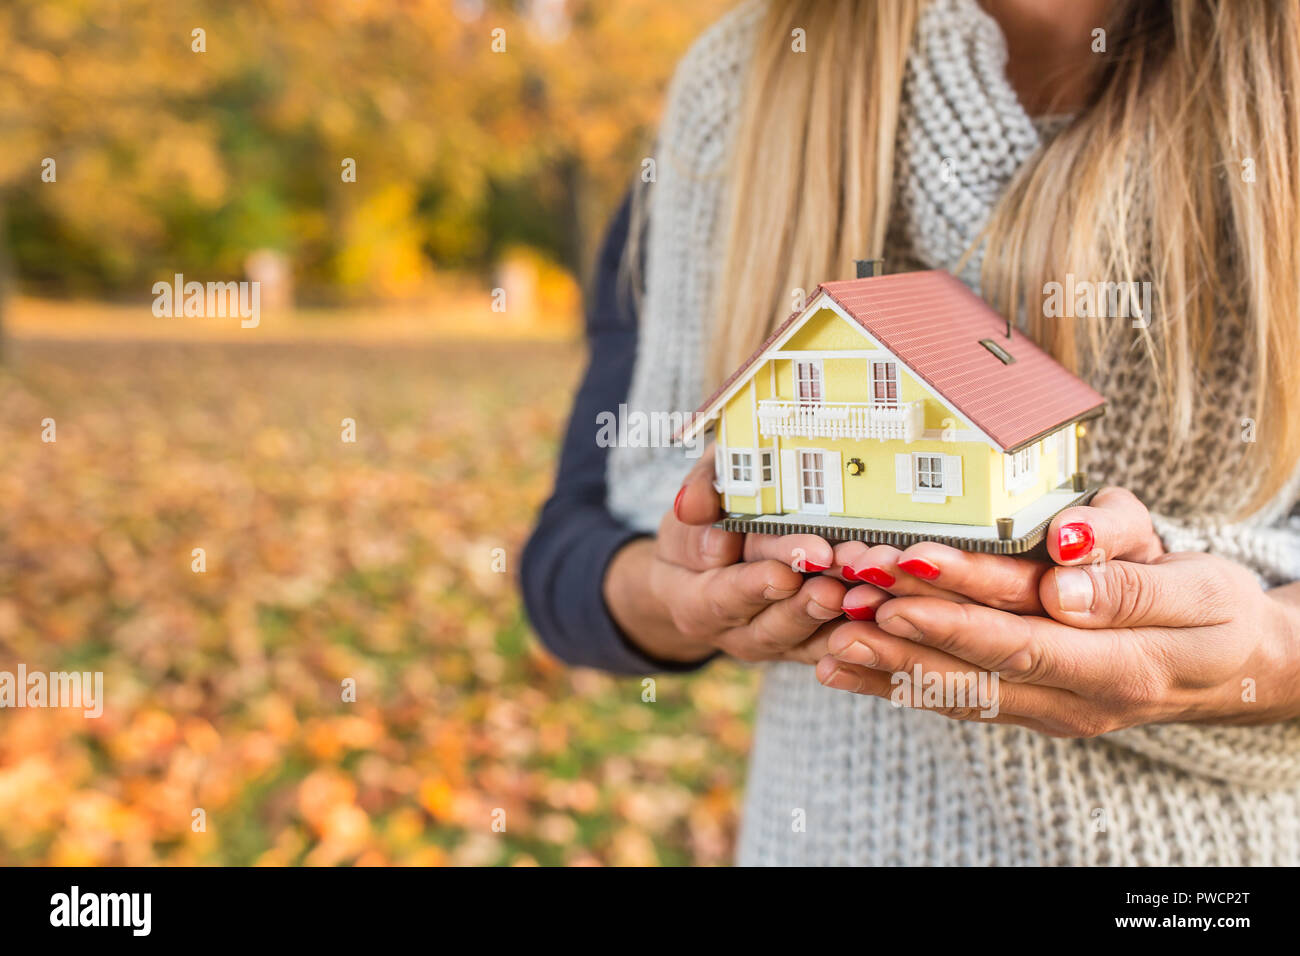 Young loving couple holding small model house in autumn garden or park Stock Photo